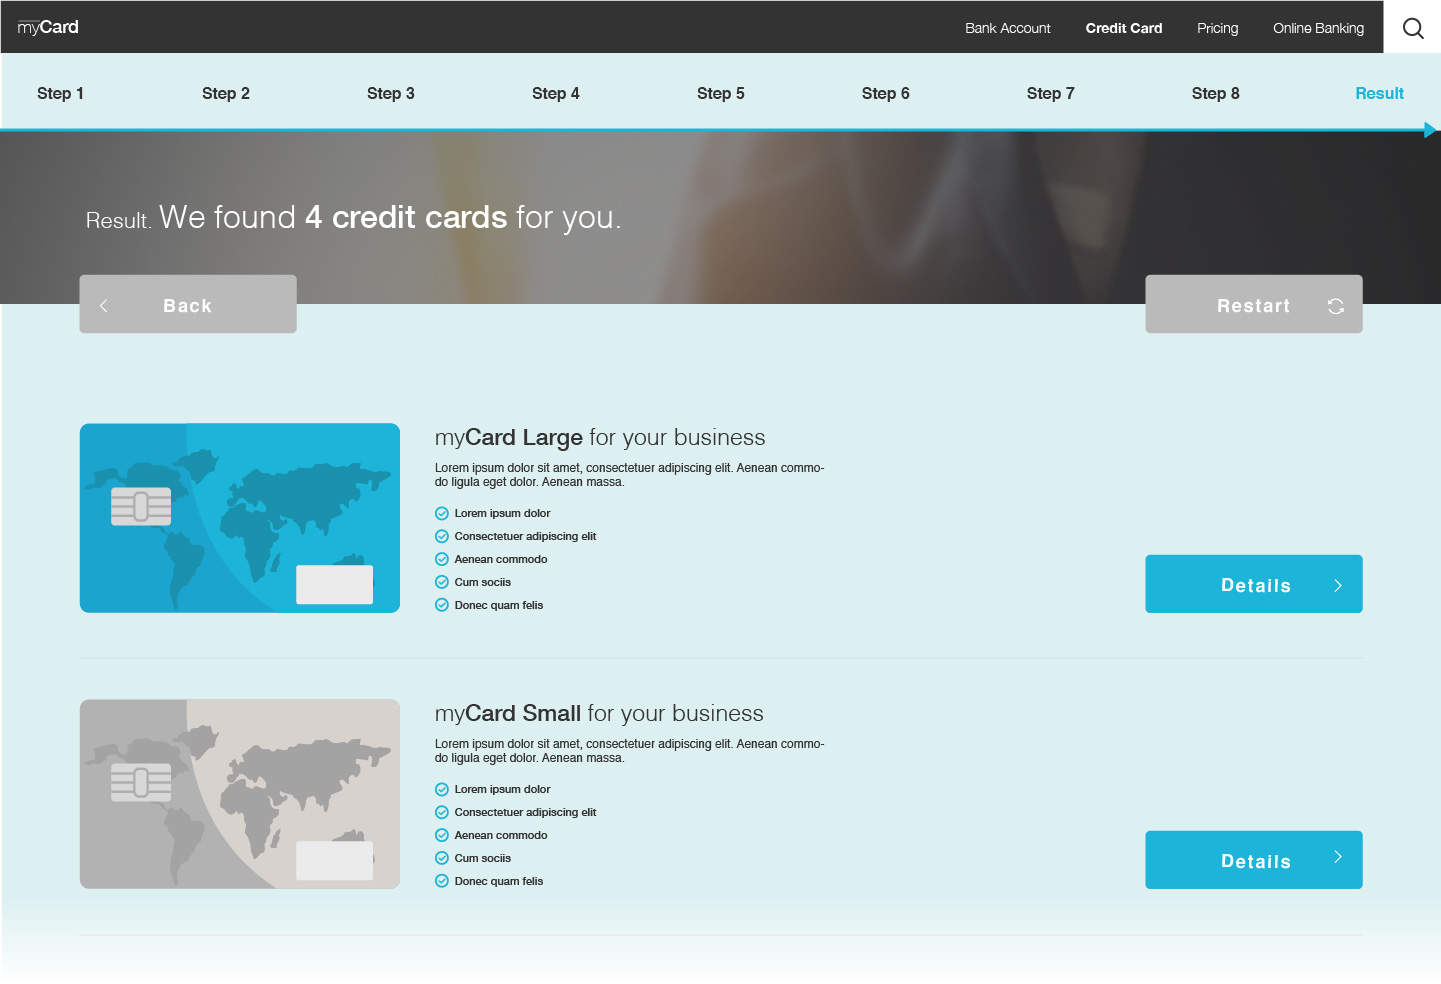 Smart Assistant provides recommendations for the best credit card